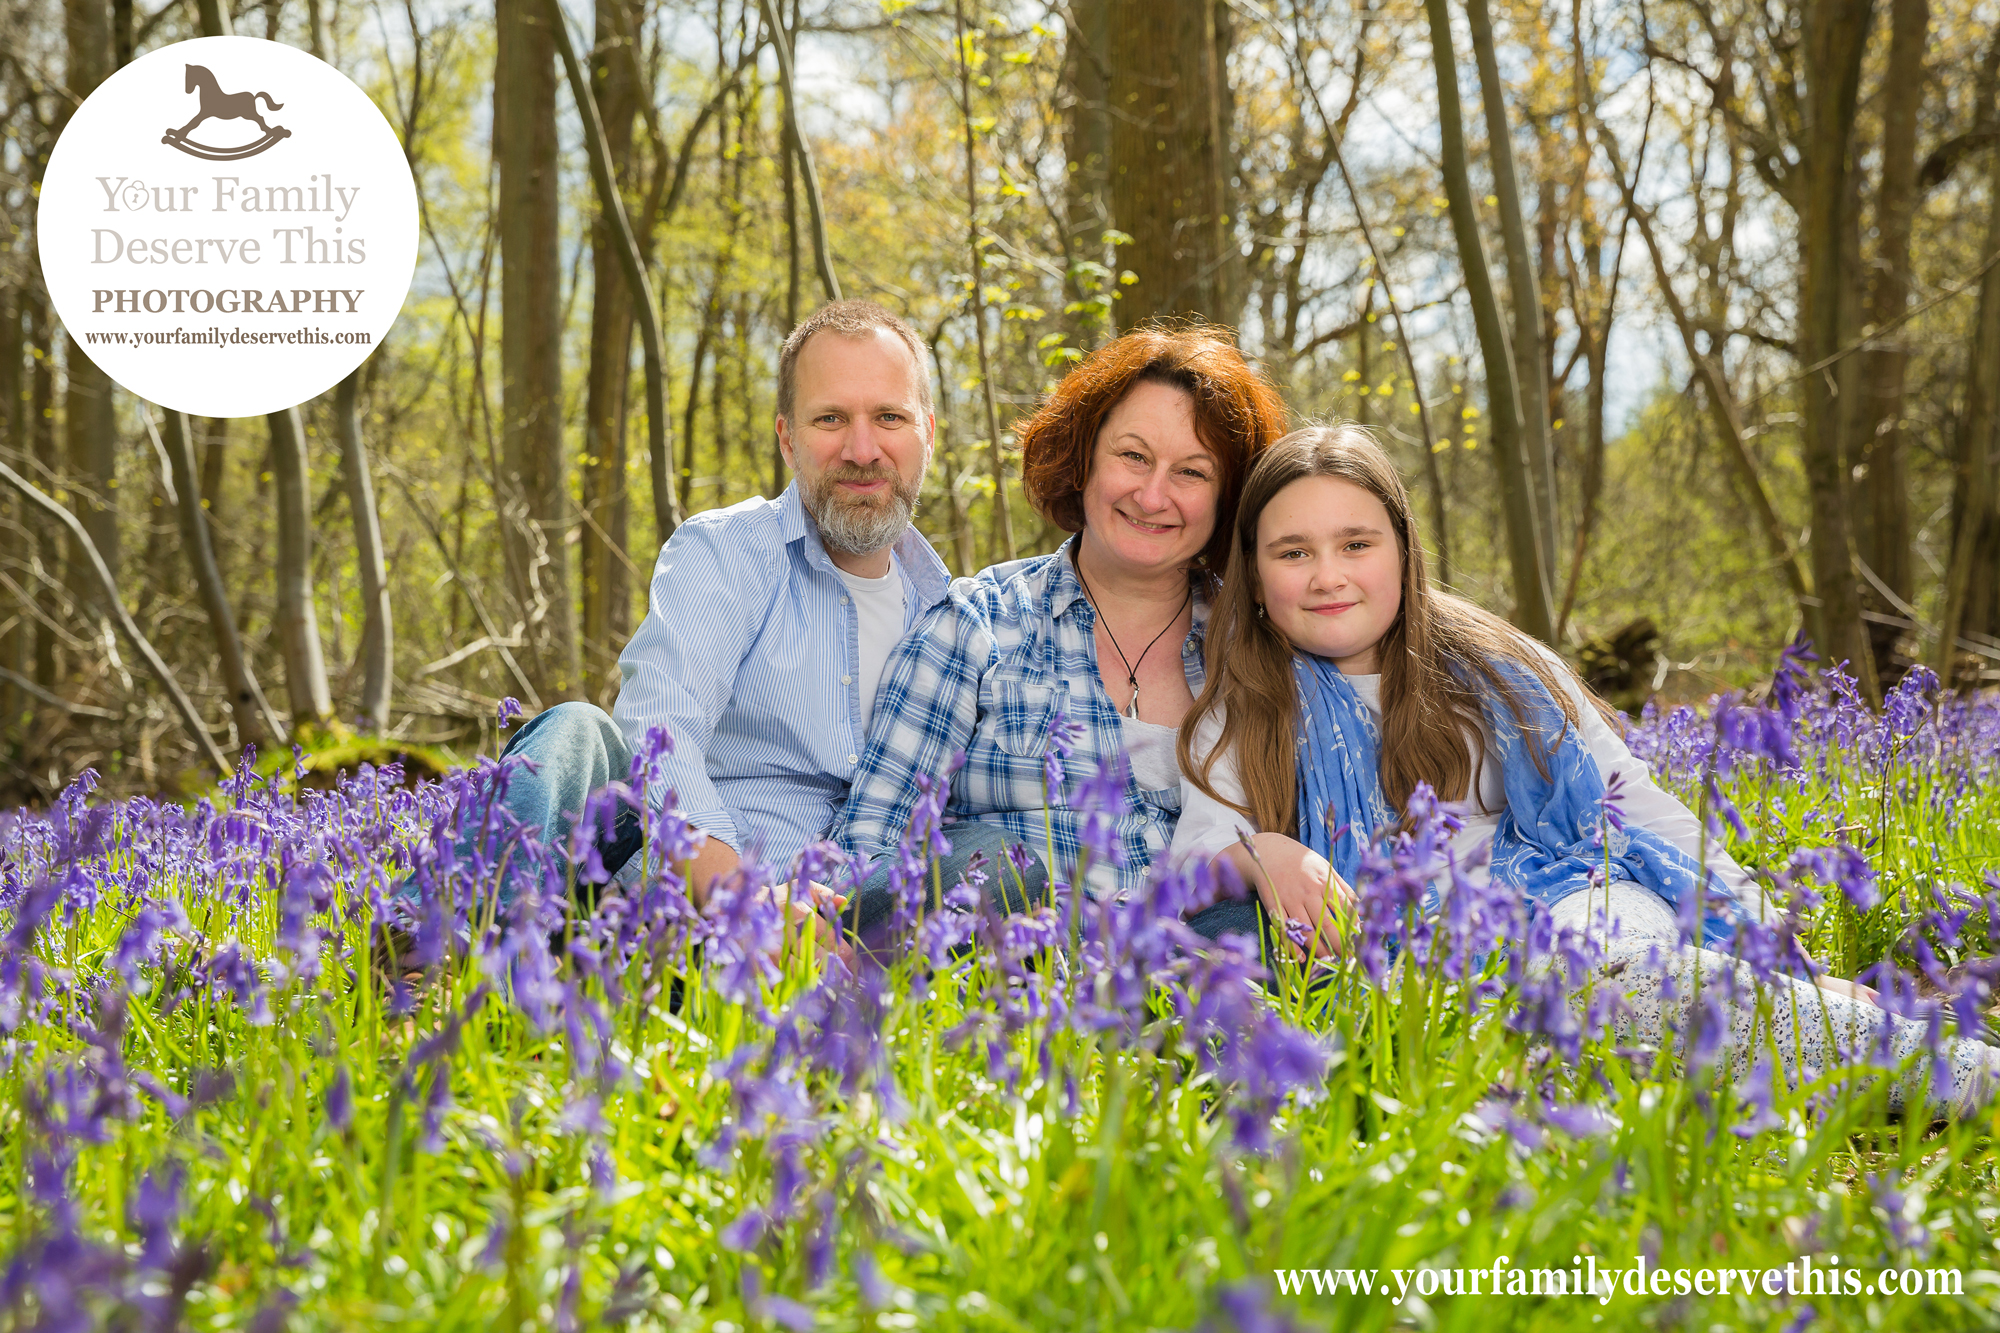 Outdoor family photoshoots in Hampshire. Bluebell woods Basingstoke.  Your Family Deserve This Photography Studio